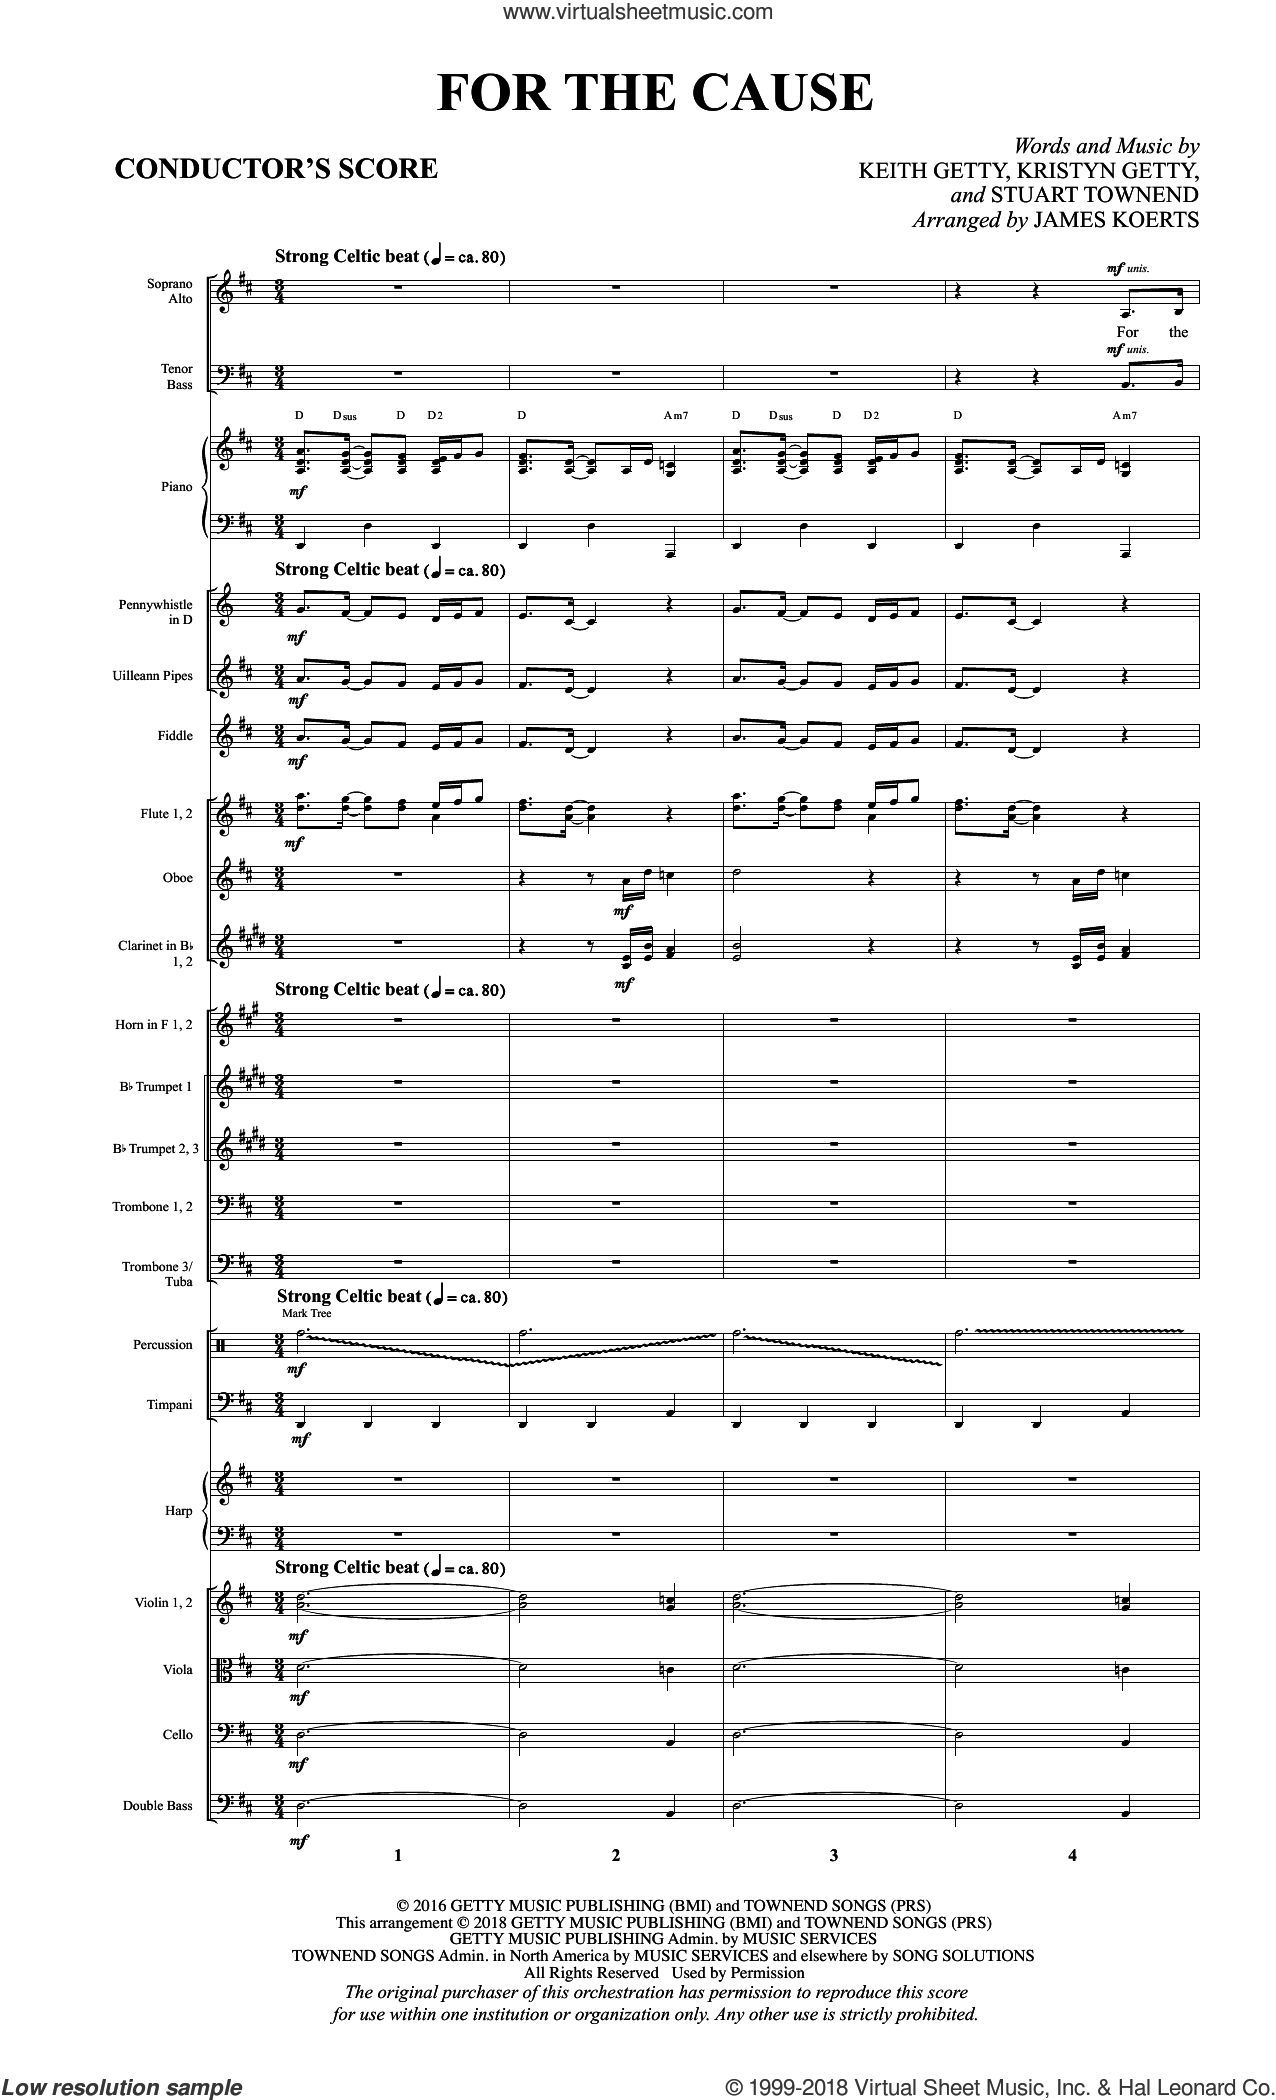 For the Cause (arr. James Koerts) (COMPLETE) sheet music for orchestra by Keith and Kristyn Getty, James Koerts, Keith Getty, Kristyn Getty and Stuart Townend, intermediate skill level